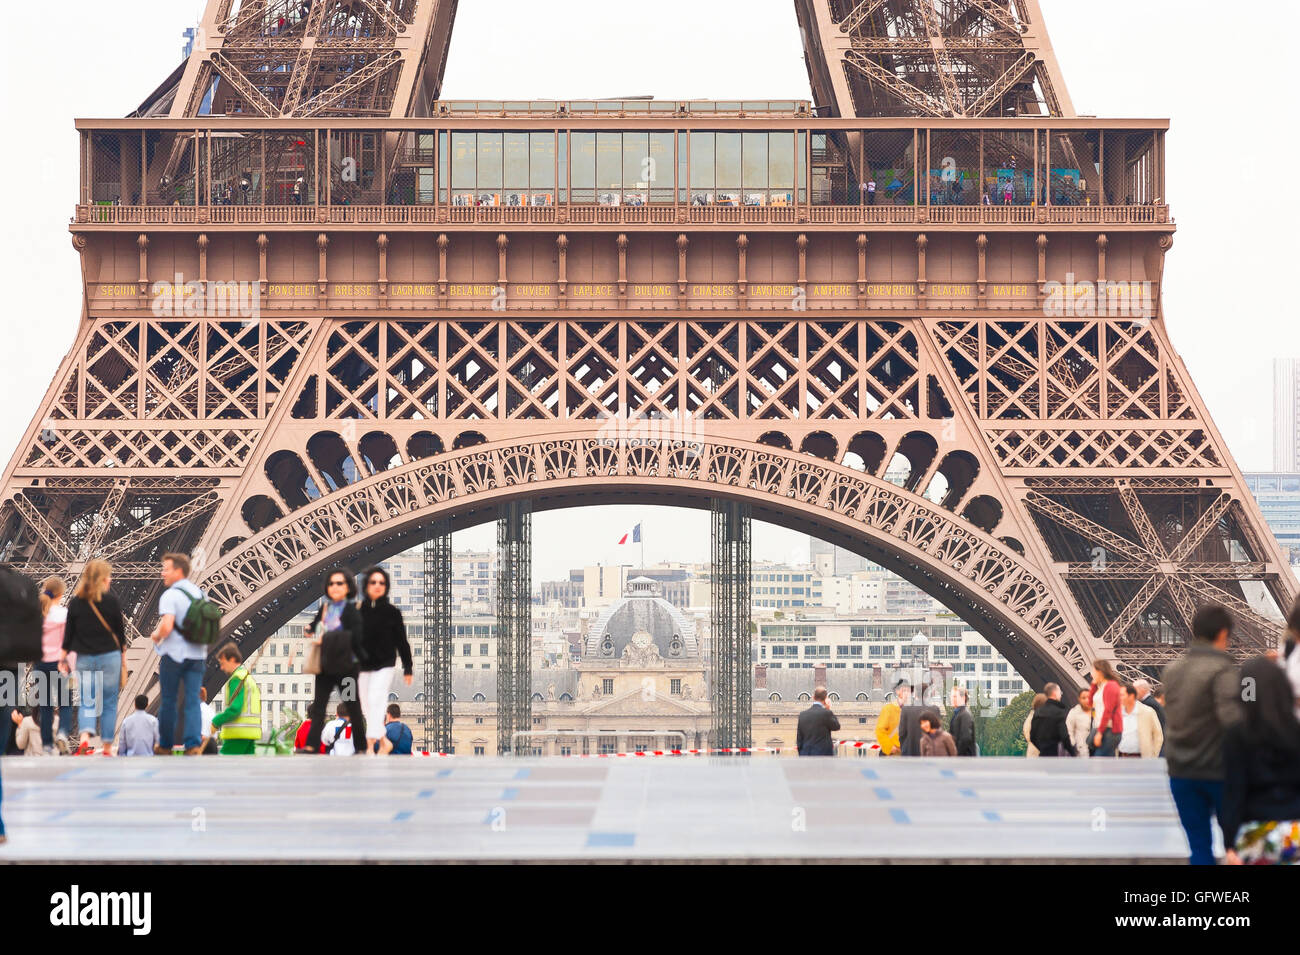 Paris Eiffel Tower, tourists walking on the terrace of the Trocadero overlooking the Eiffel Tower in Paris, France. - Stock Image